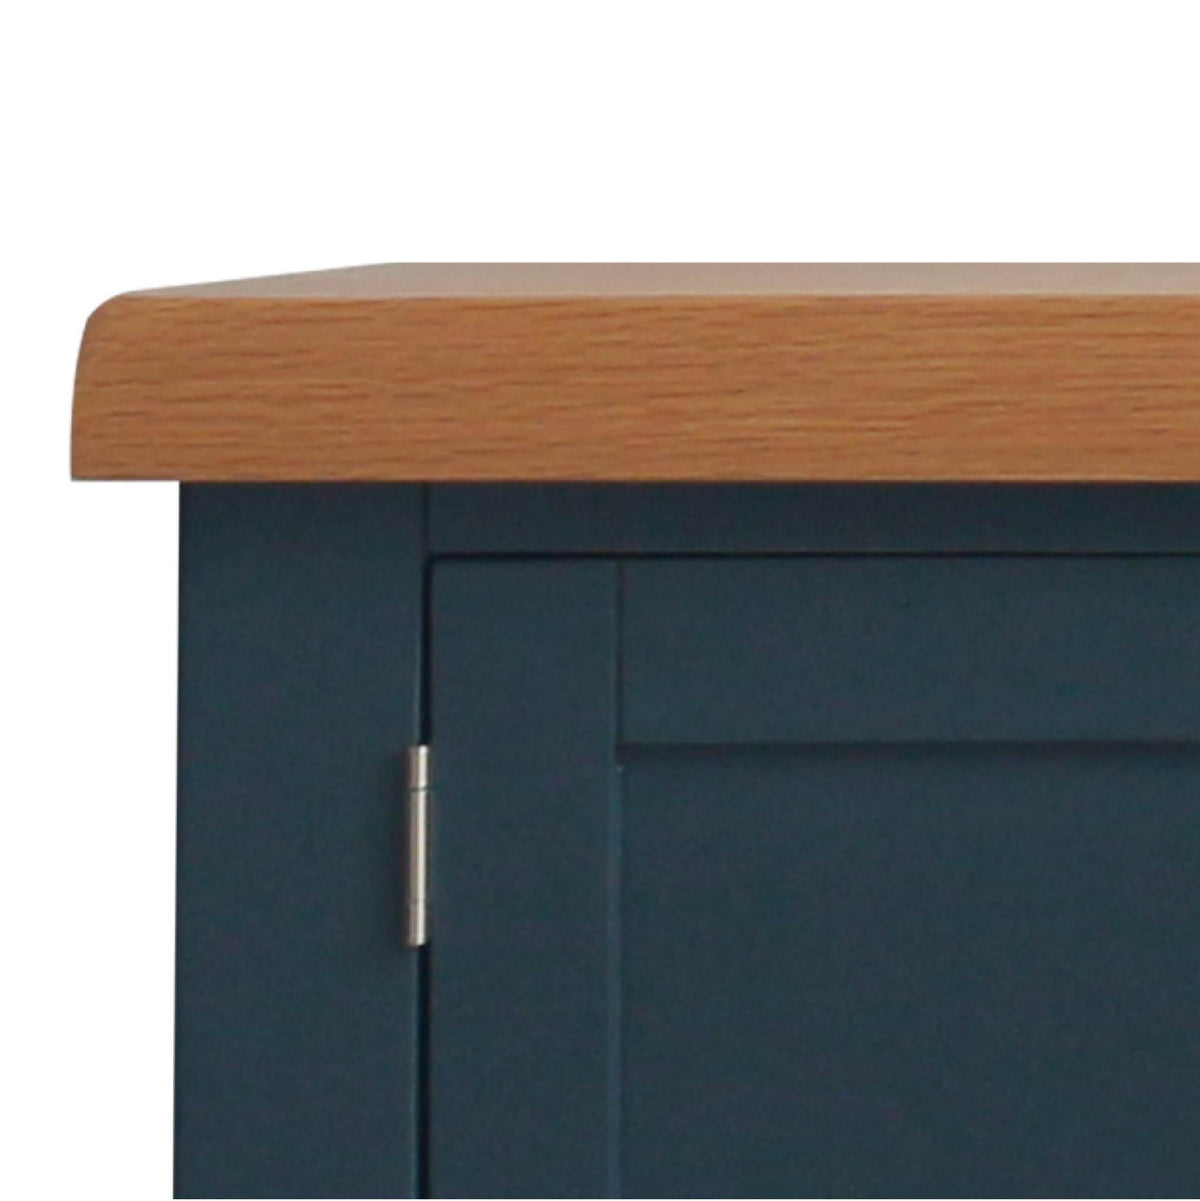 close up of oak tabletop on the Chatsworth Blue 90 cm Small TV Stand from Roseland Furniture